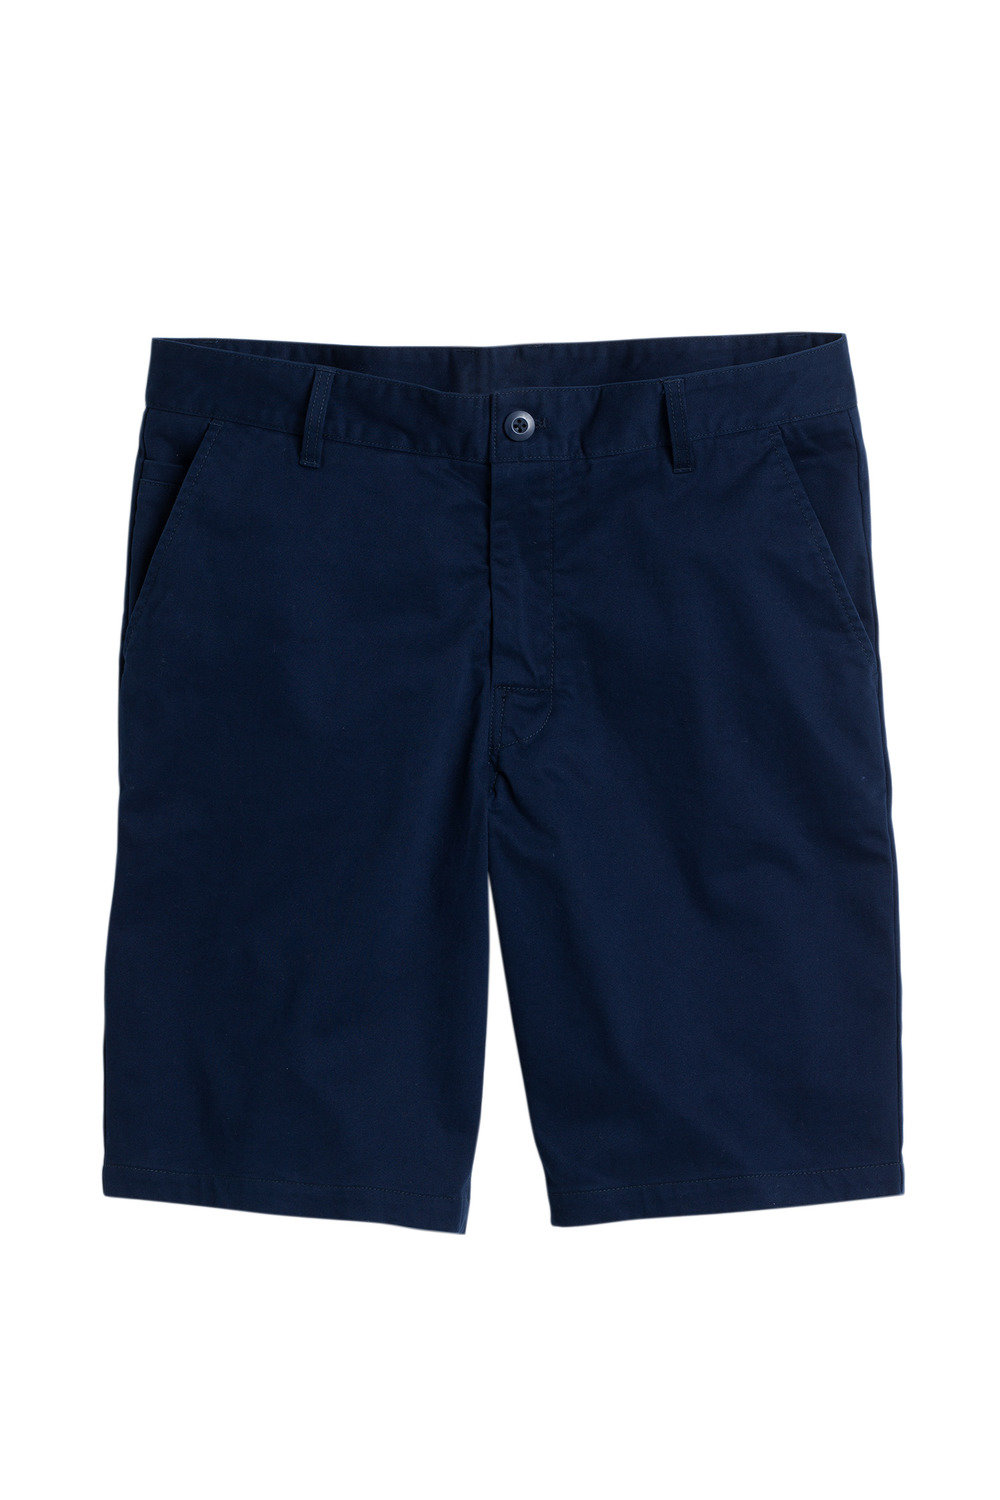 Mens Pants Jeans Trousers Shorts Ezibuy Au Tendencies Navy Chinos Short 32 Quick View 2 Colours Southcape Chino